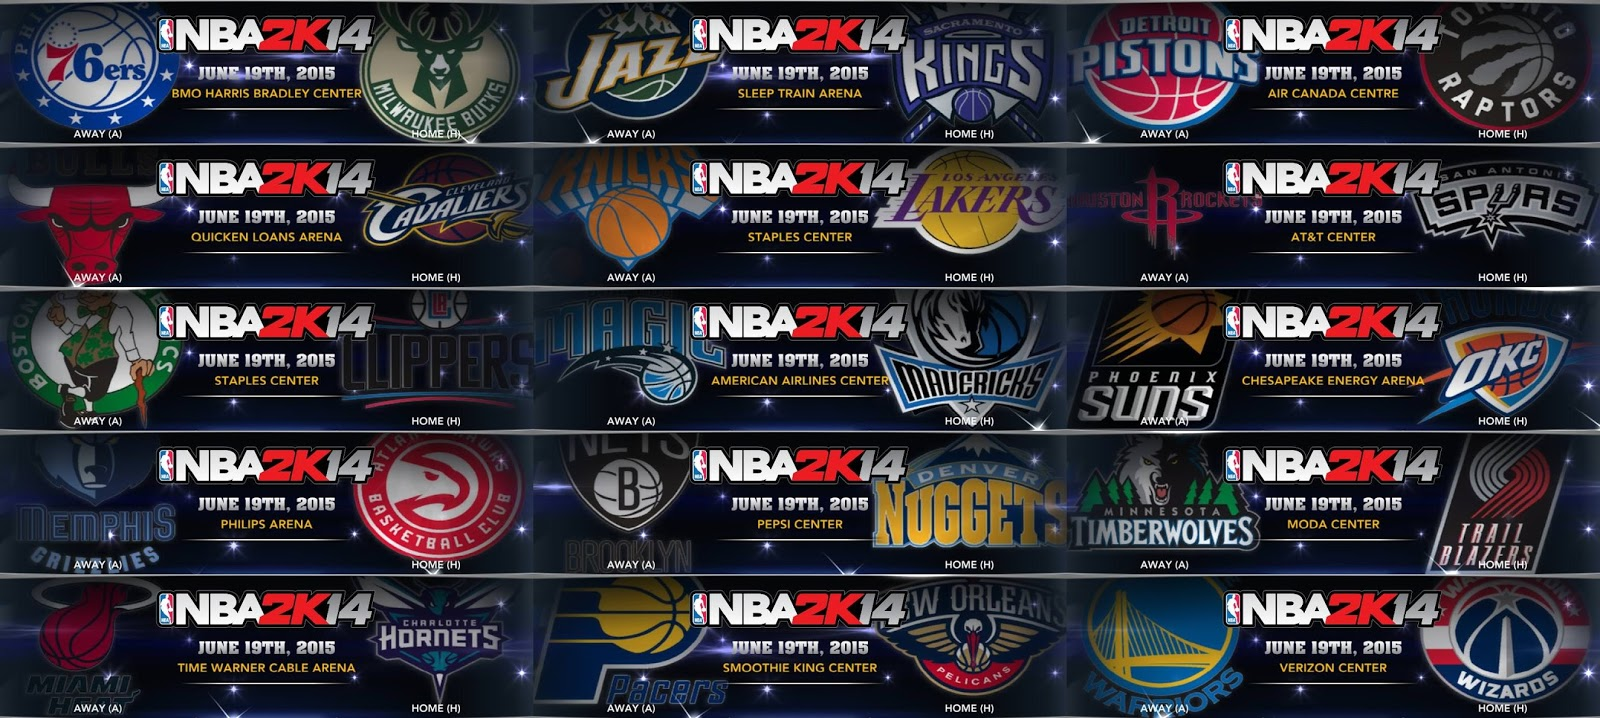 NBA 2K14 2015-16 NBA Logos Patch - Partial Primary Logos